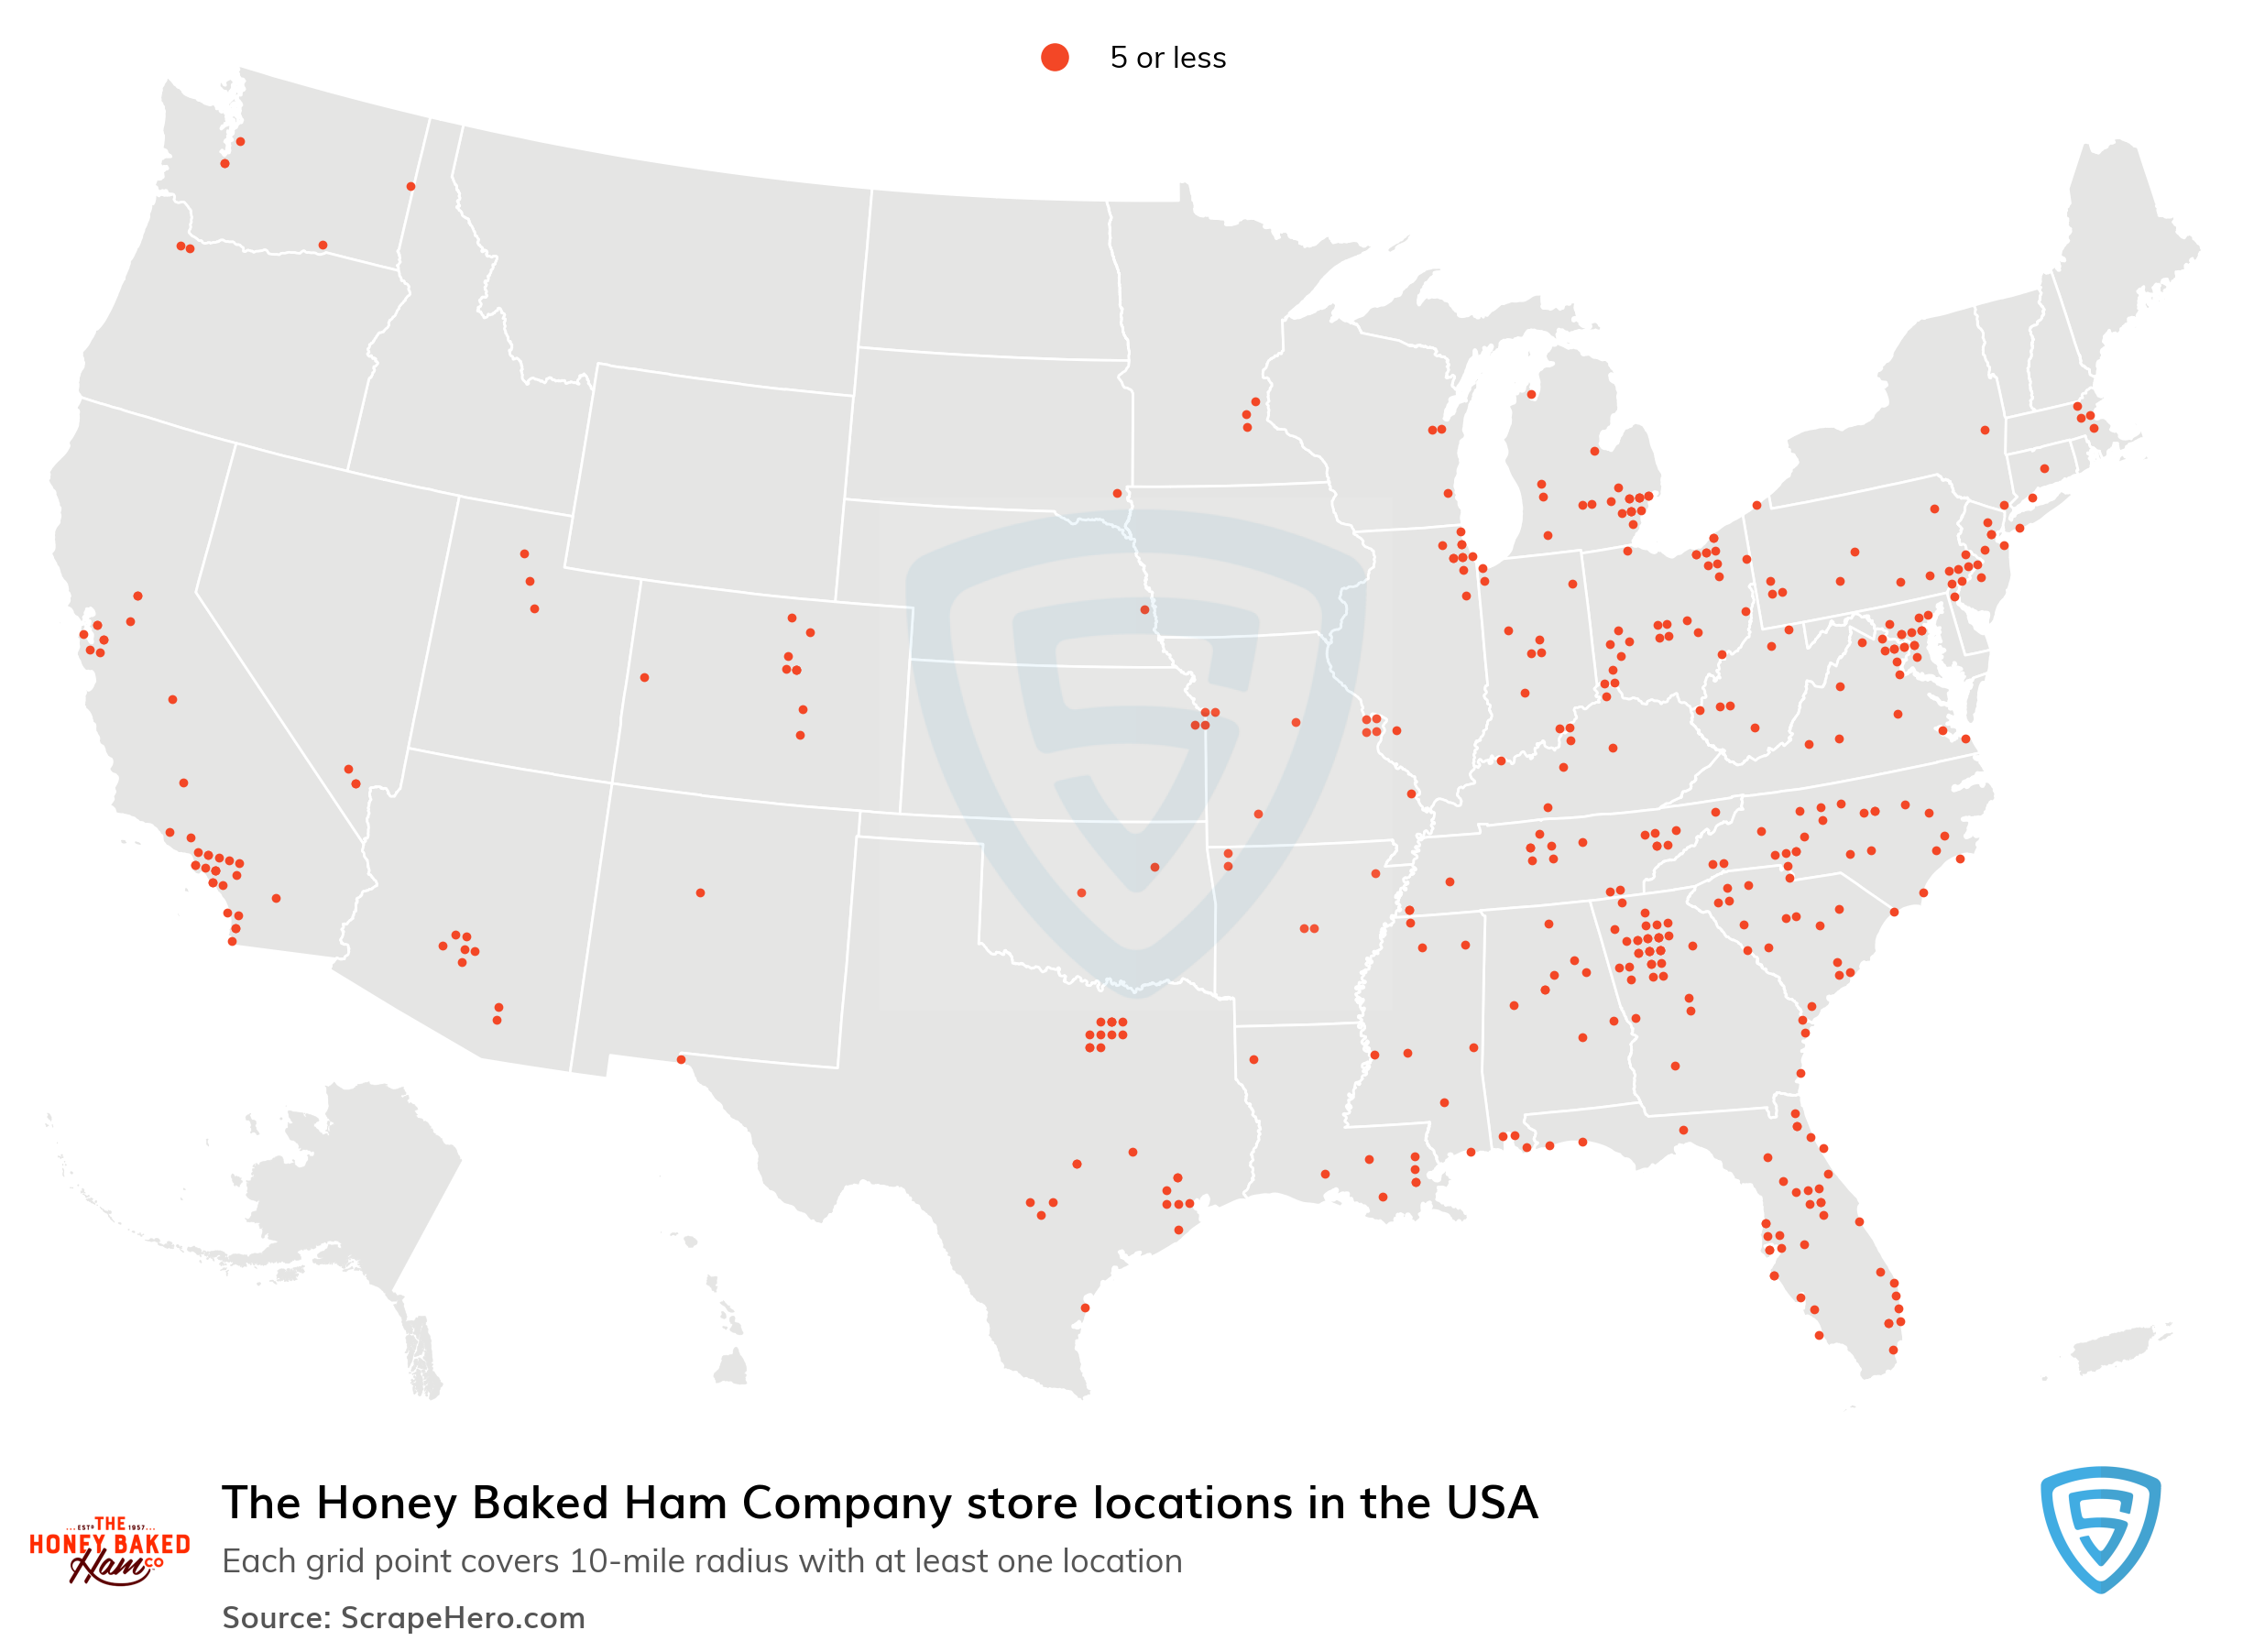 Map of The Honey Baked Ham Company locations in the United States in 2021